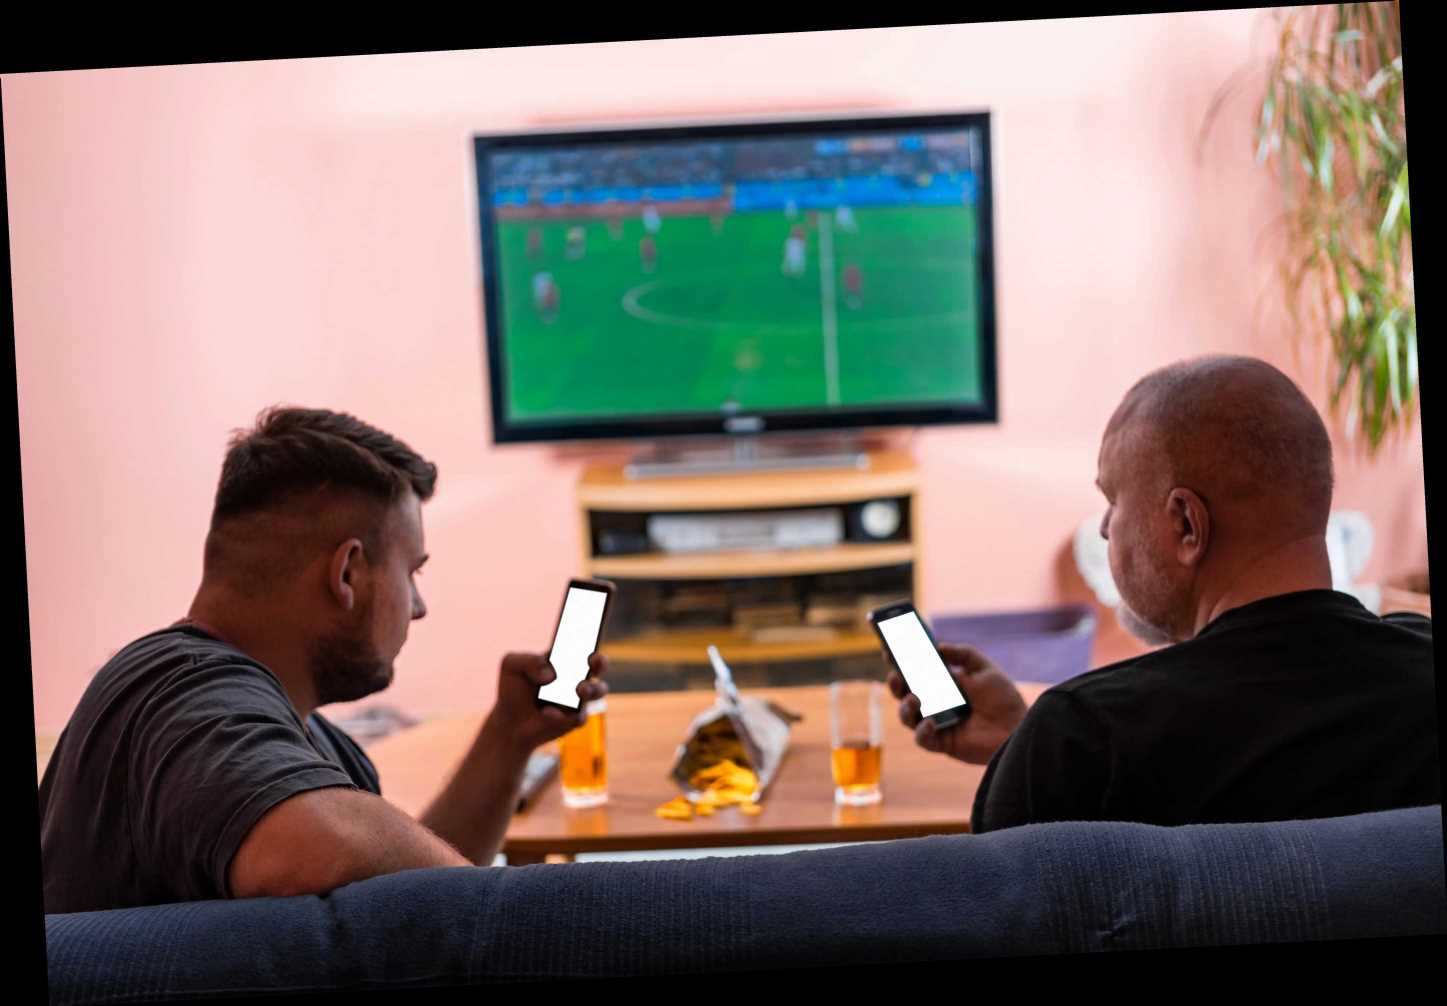 Arsenal fans struggle to watch matches at home more than any other supporter with distractions spoiling beautiful game